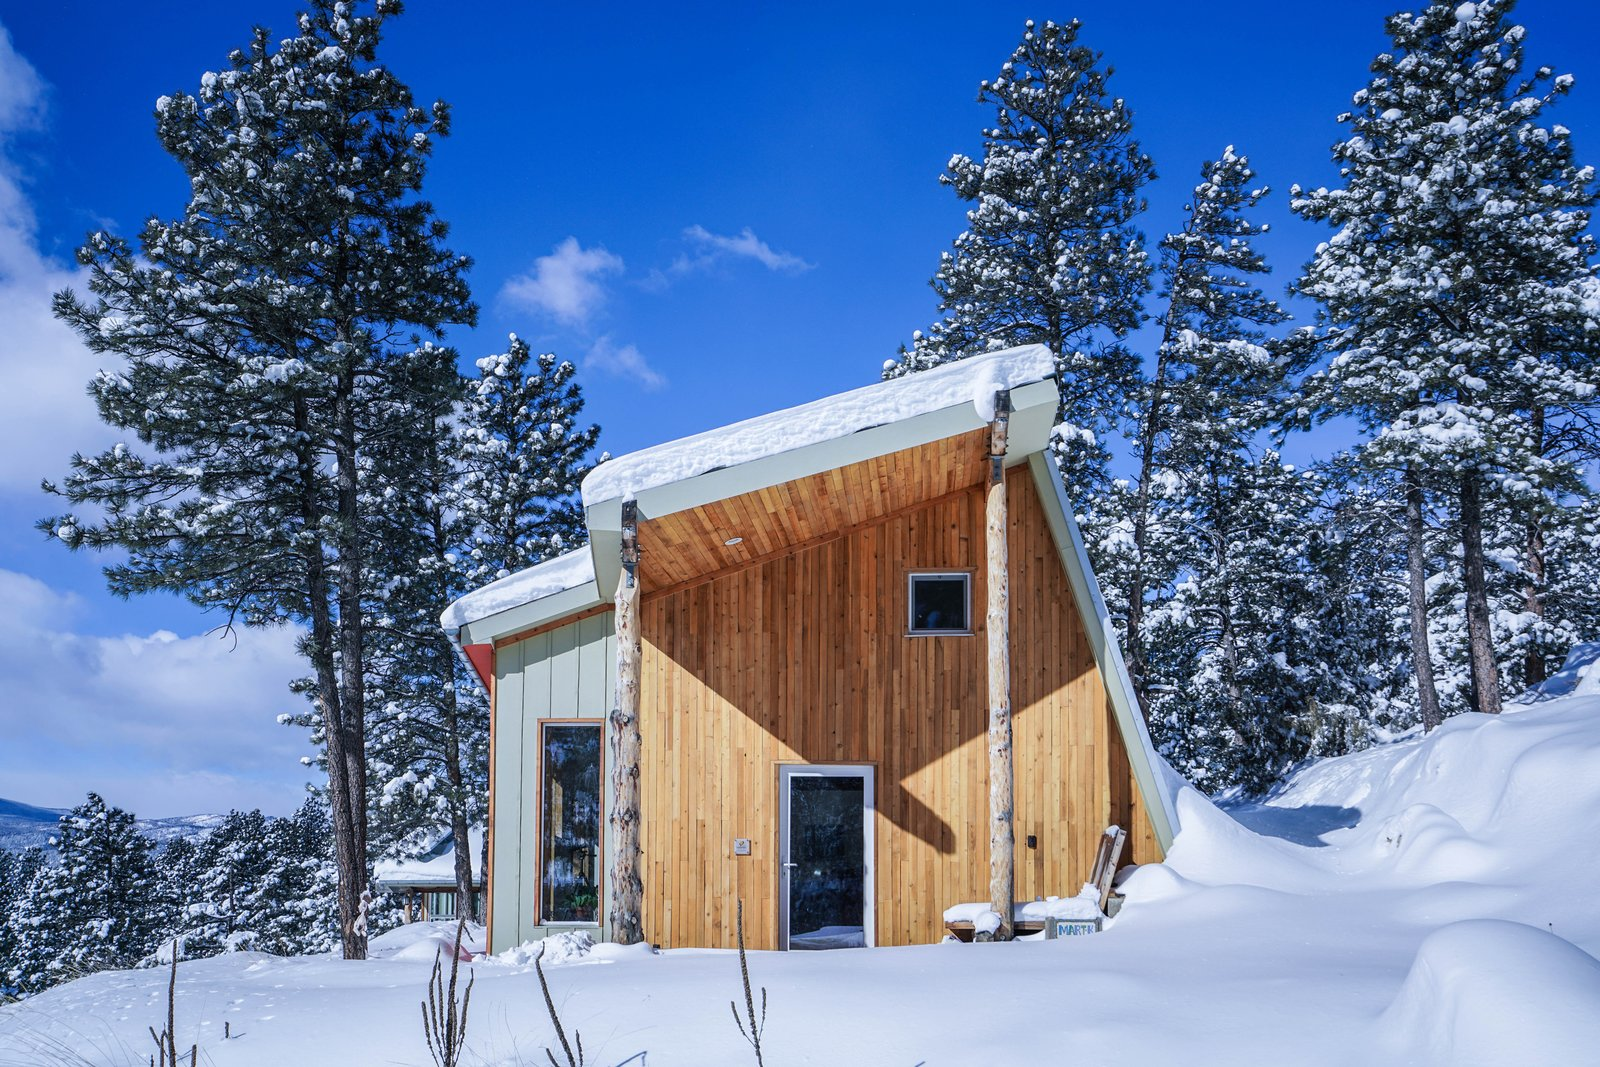 Martak passive house modern home in fort collins colorado for Cabin rentals near fort collins colorado